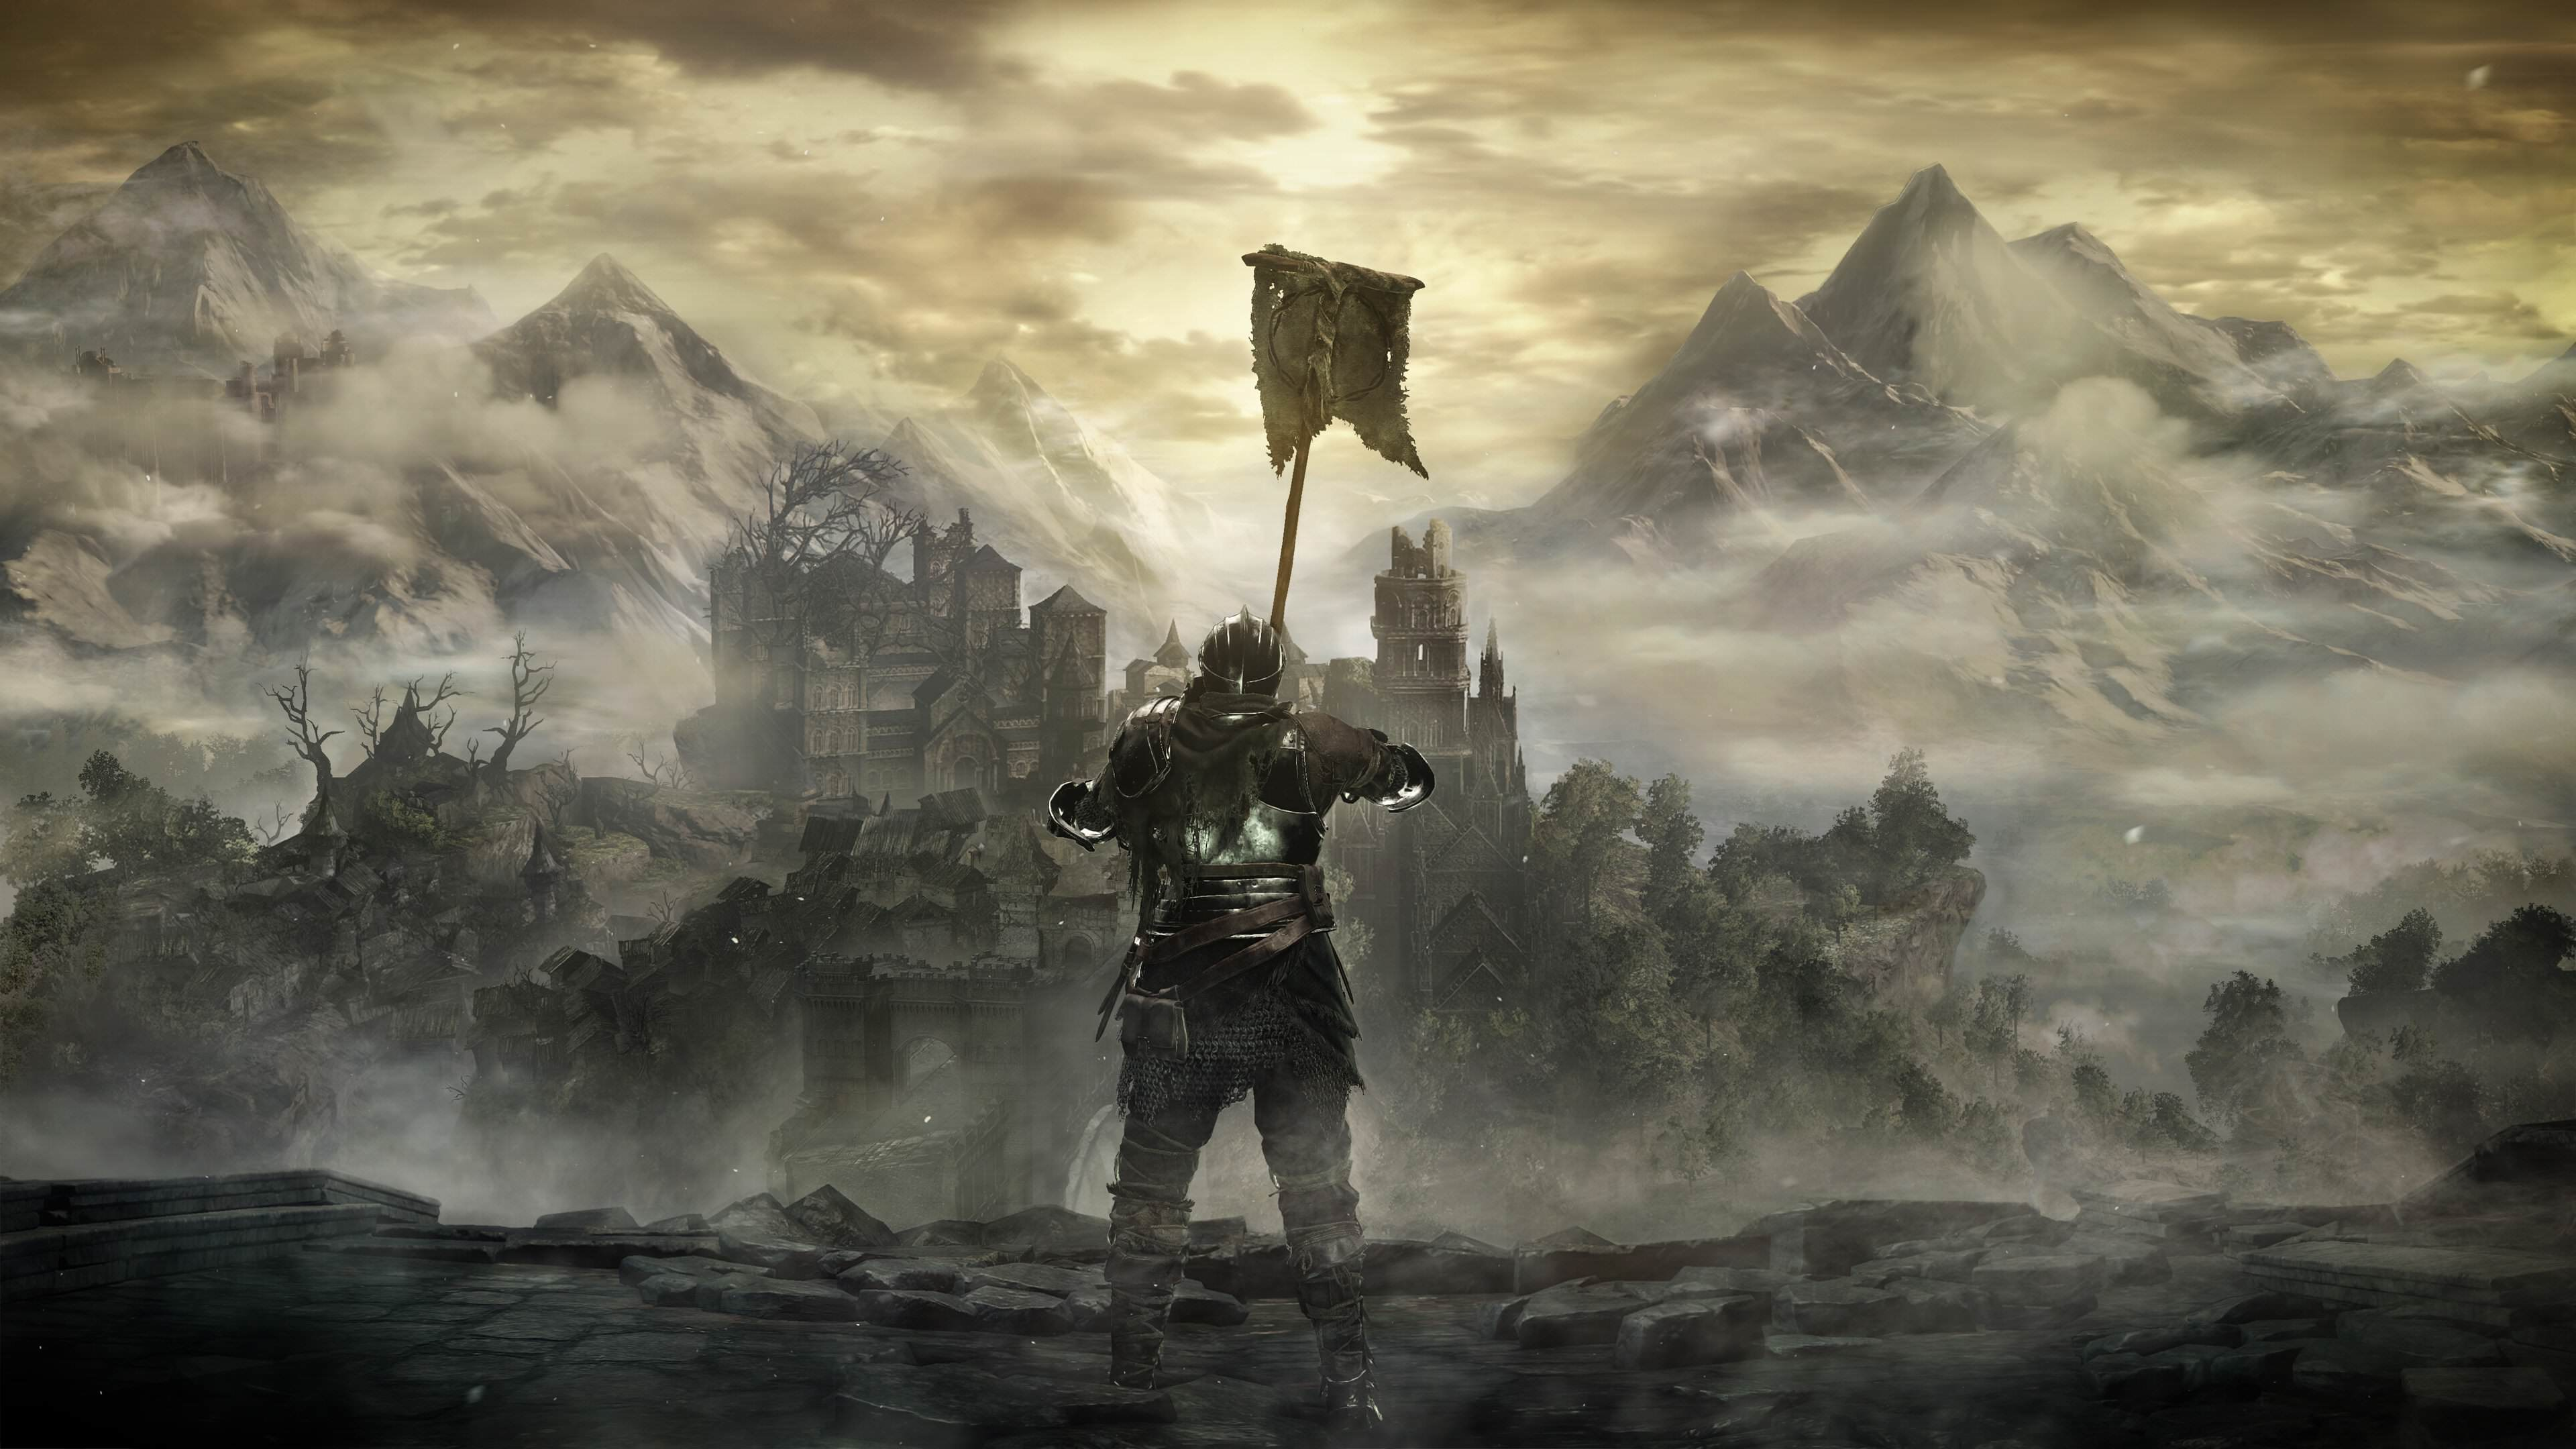 New Dark Souls 3 Screenshots Reveal All Kinds Of New Info Rasing flag below High Wall of Lethric noscale